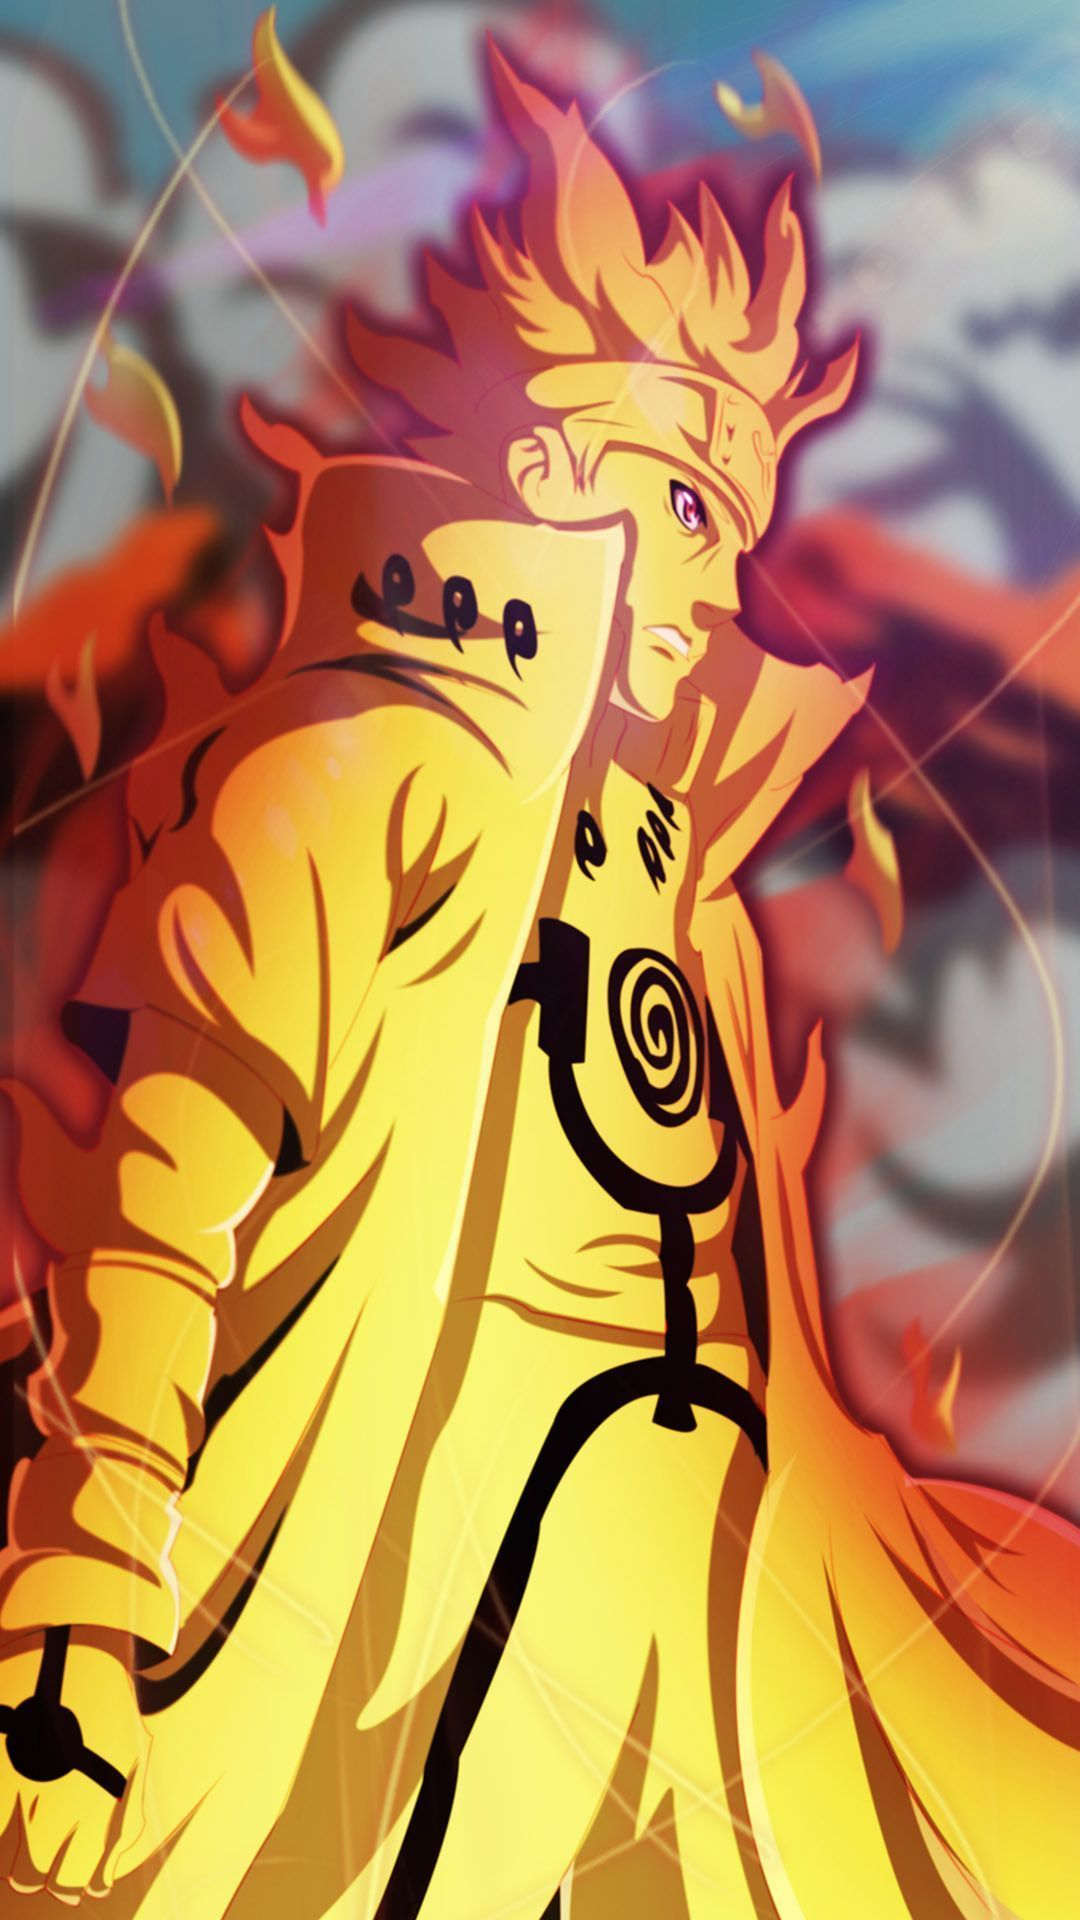 4k Naruto Wallpapers Top Free 4k Naruto Backgrounds Wallpaperaccess